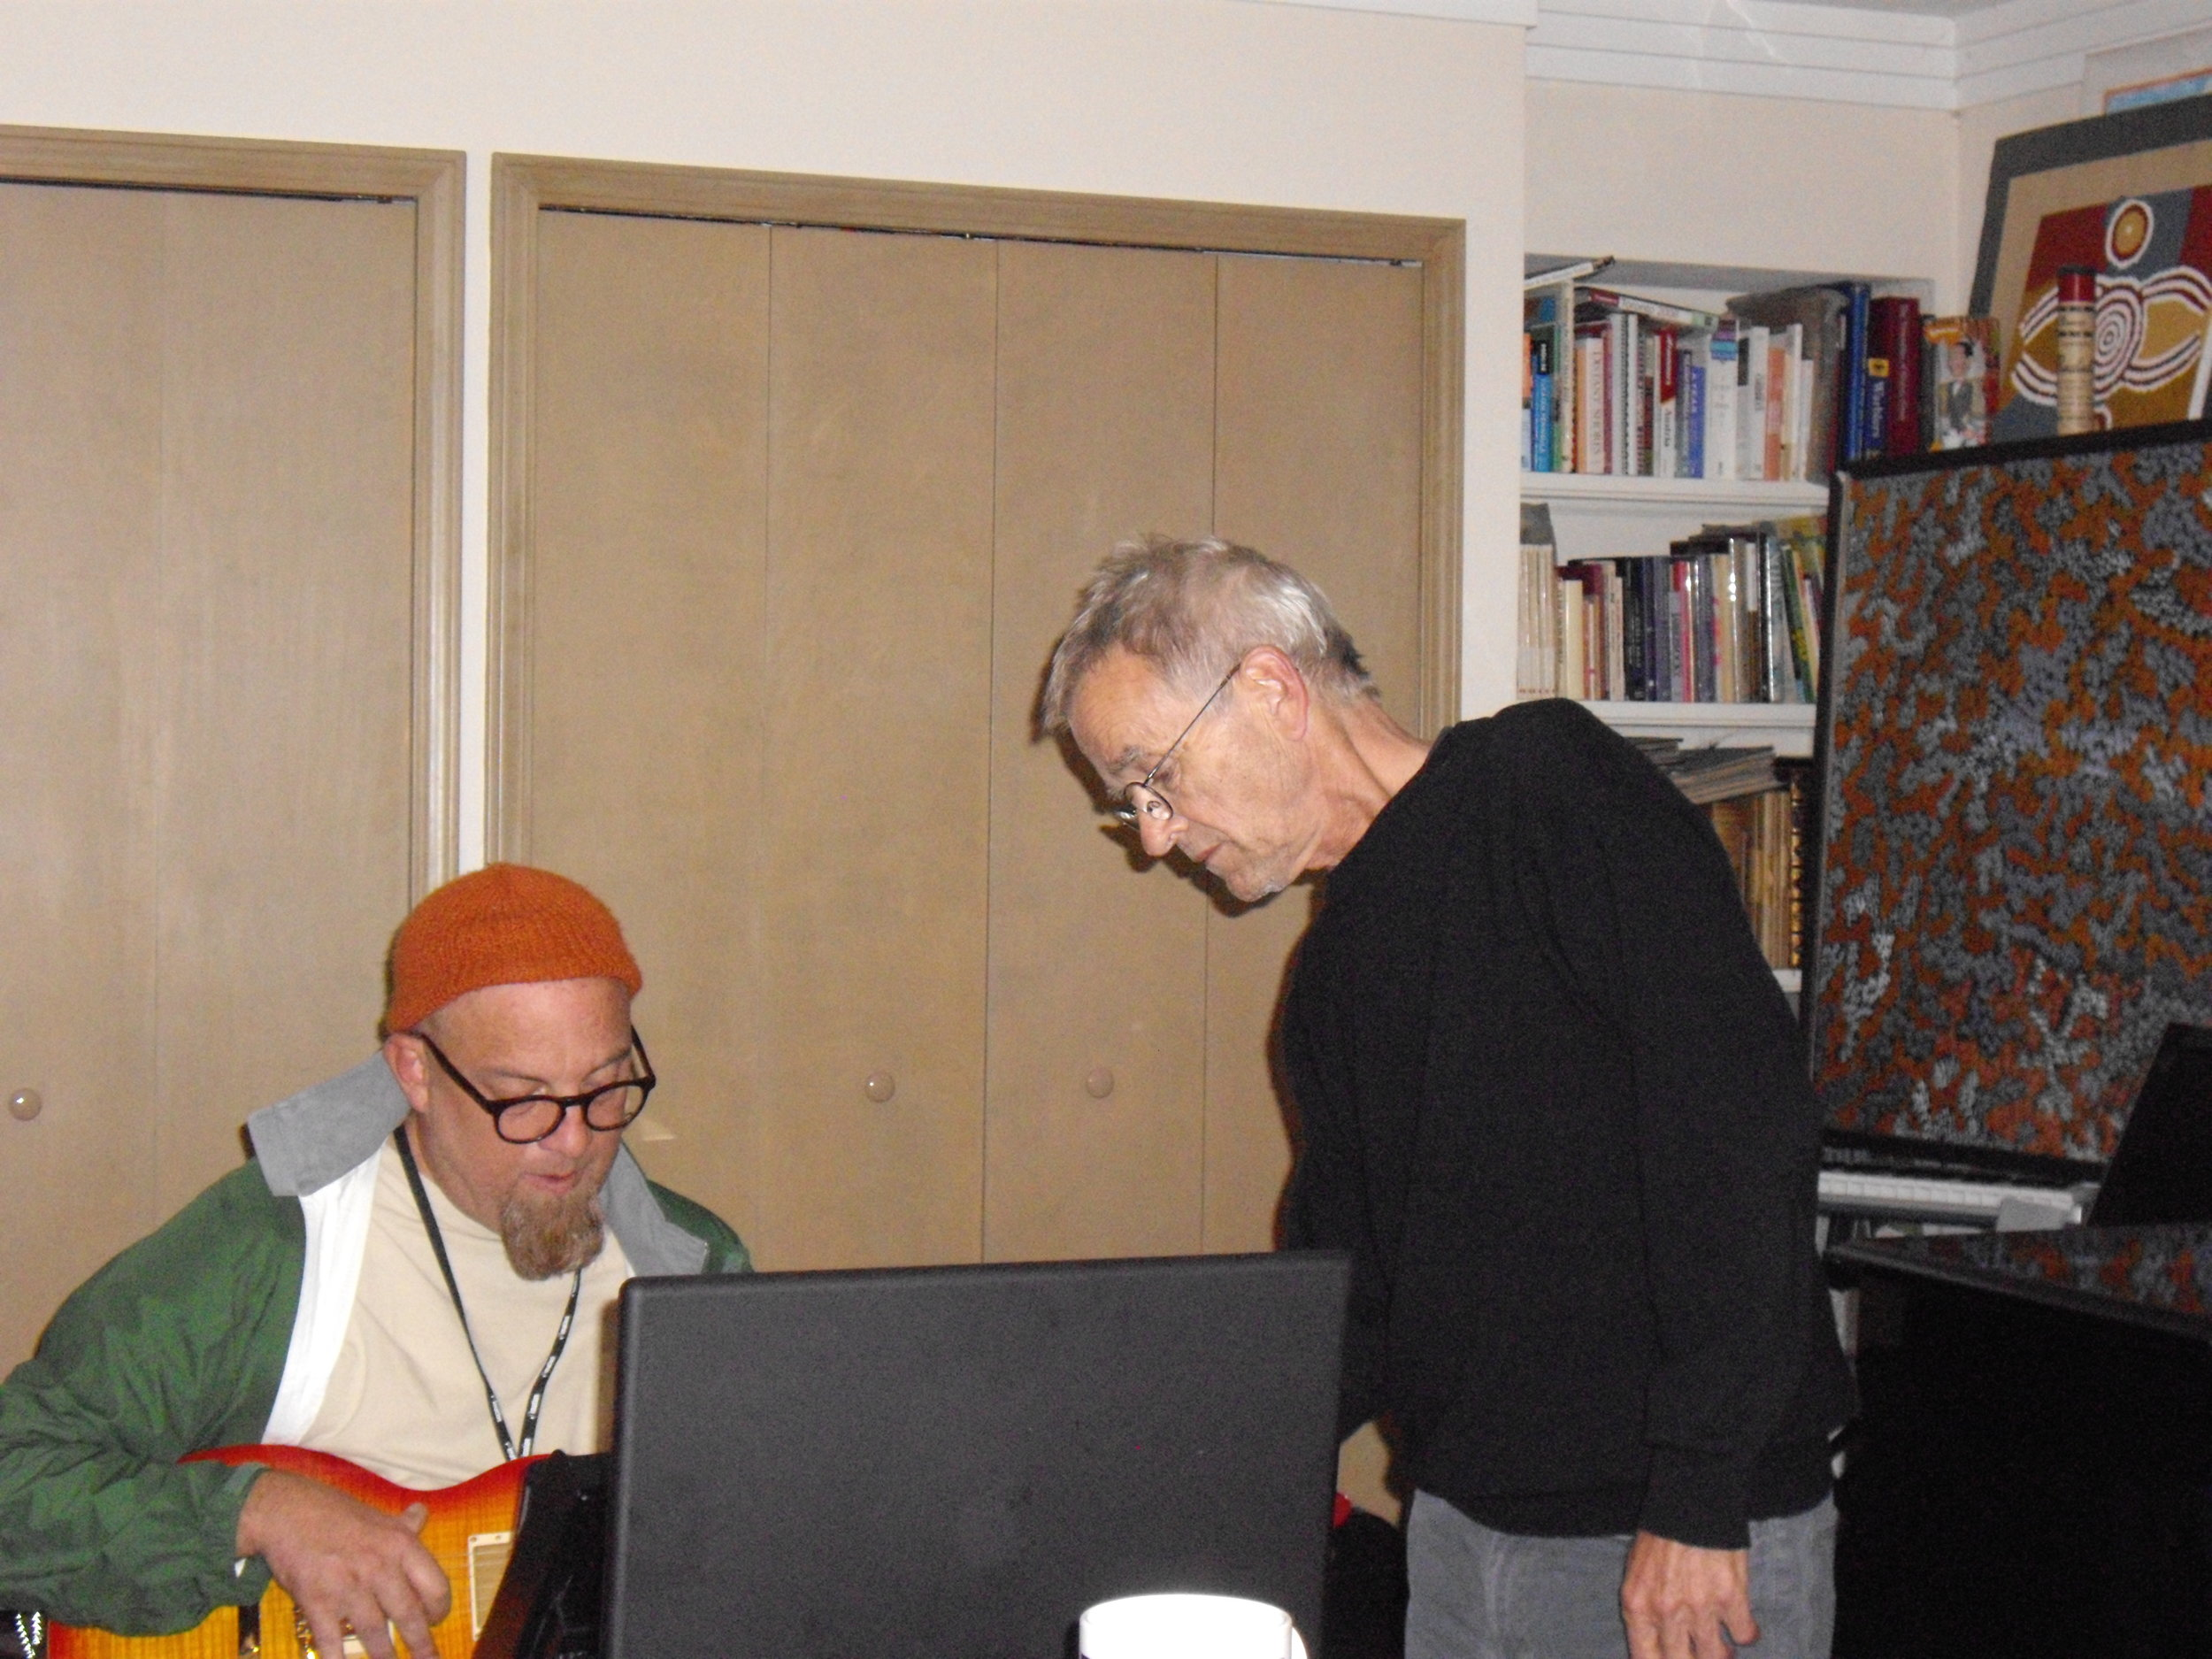 Dwight Ashley and Dieter Moebius recording  Objective Objects , Seventh Chance Studio, Maumee, Ohio